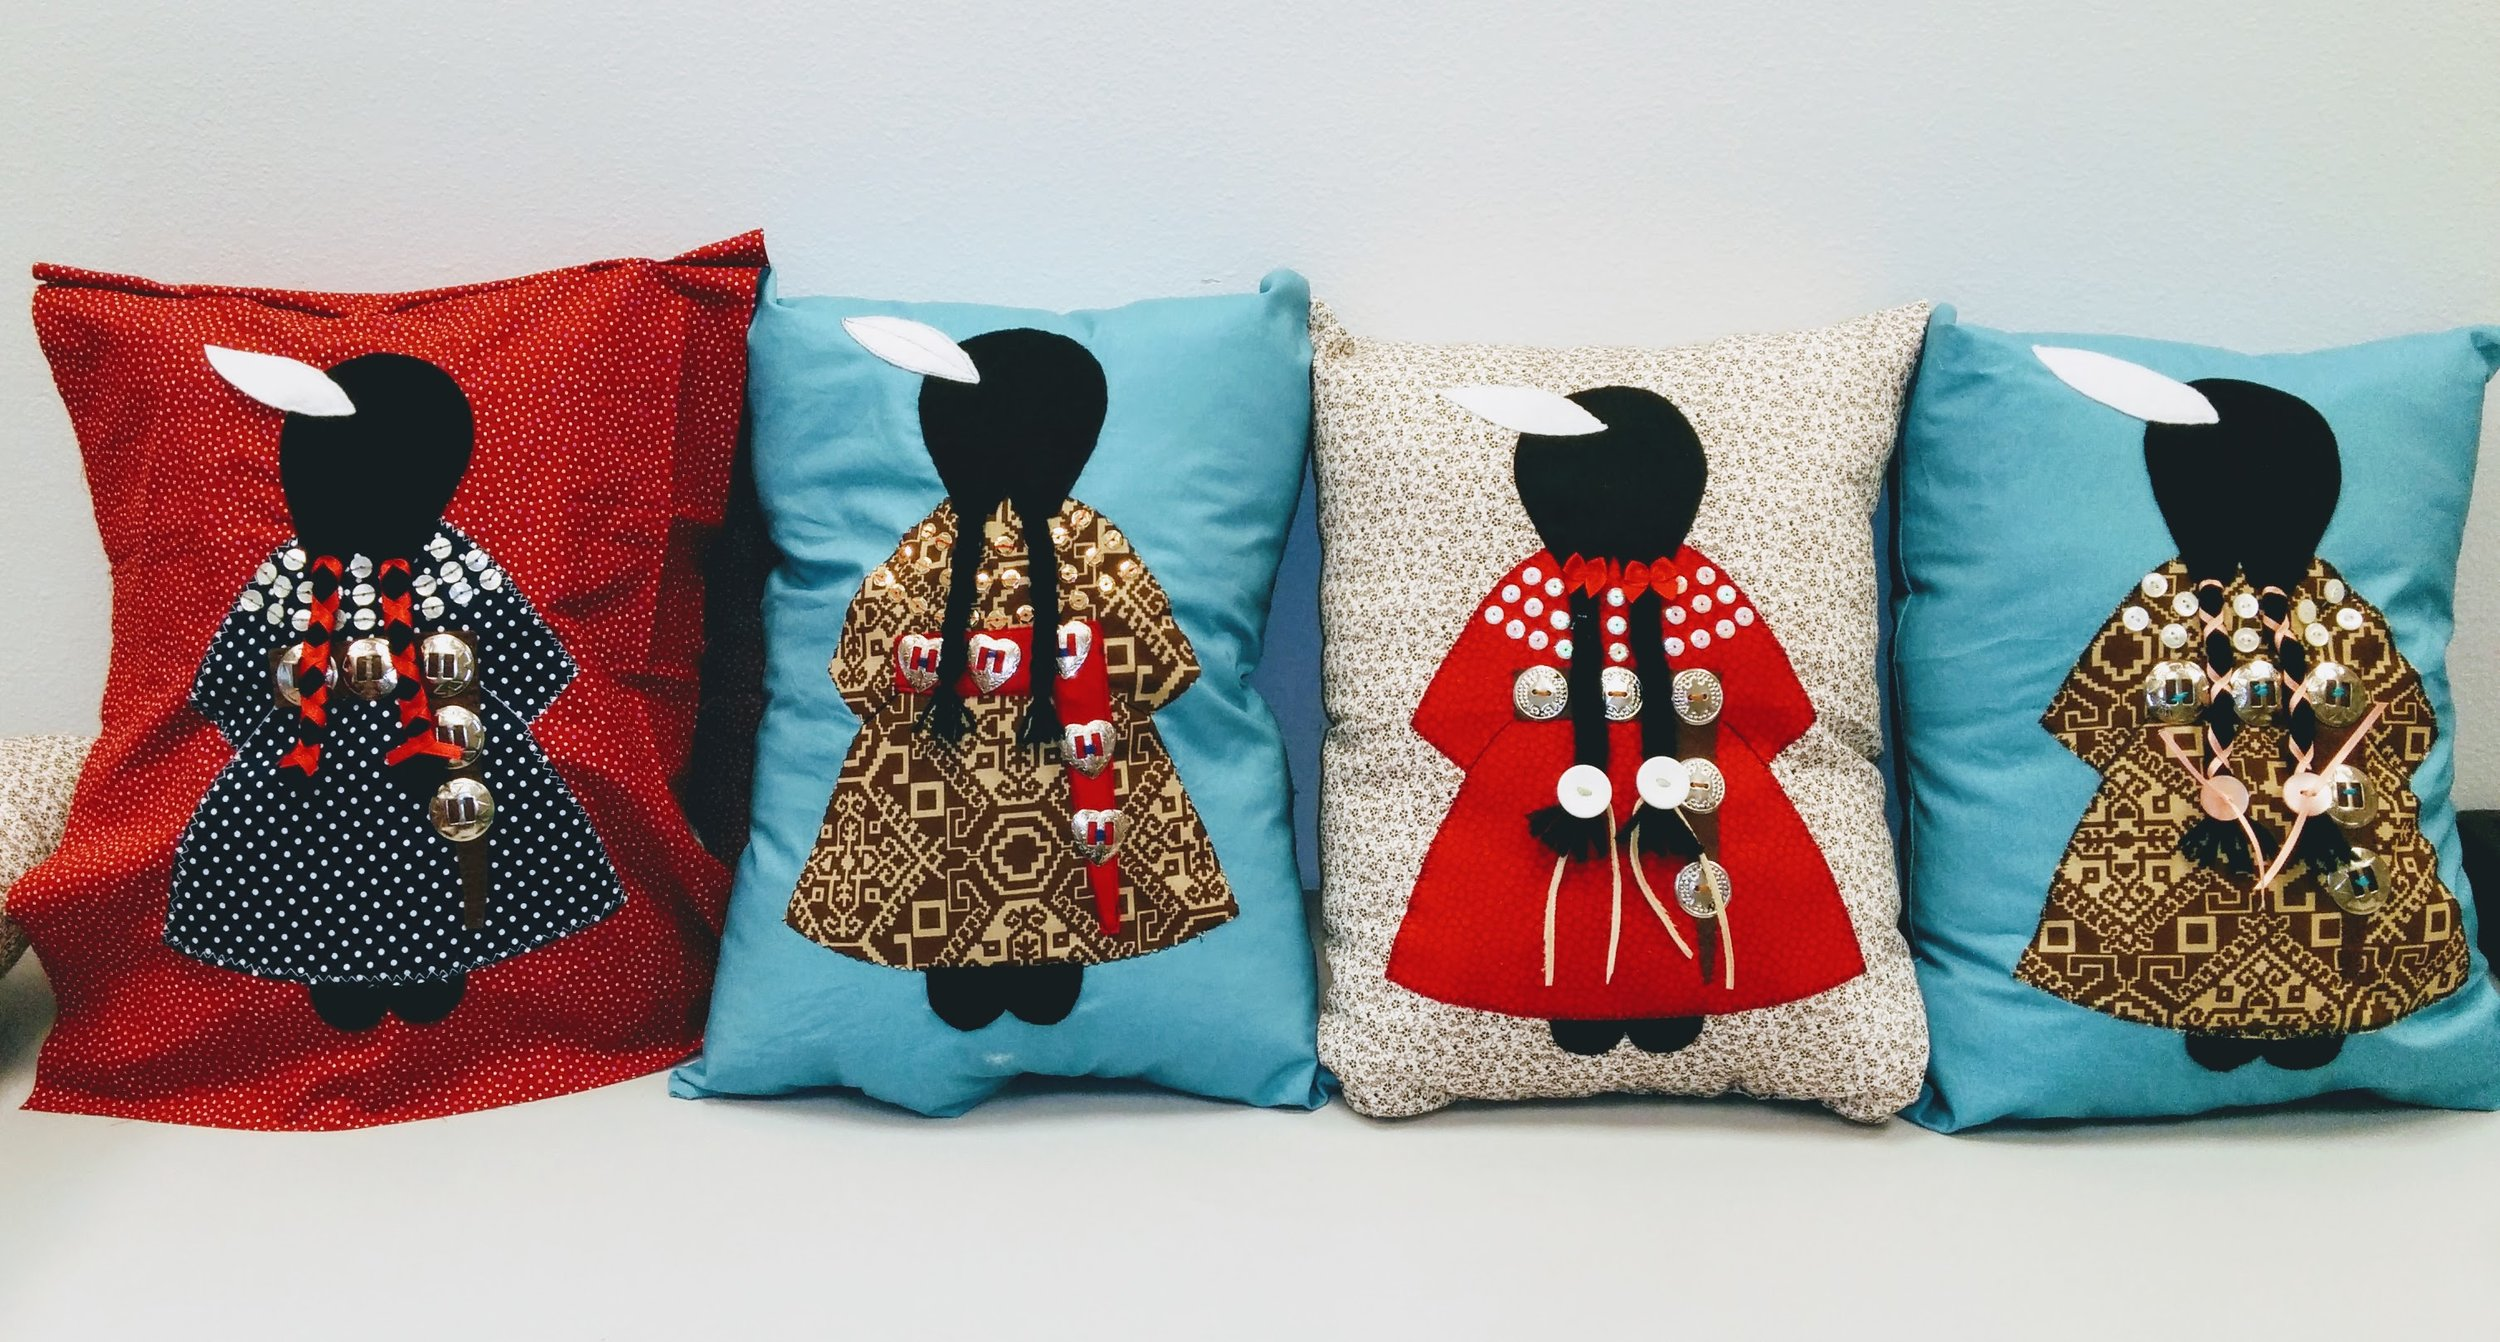 Pillows sewn by the sewing circle that Chelsea helped organize. Photo couresty of Chelsea Wilson (Rosebud).